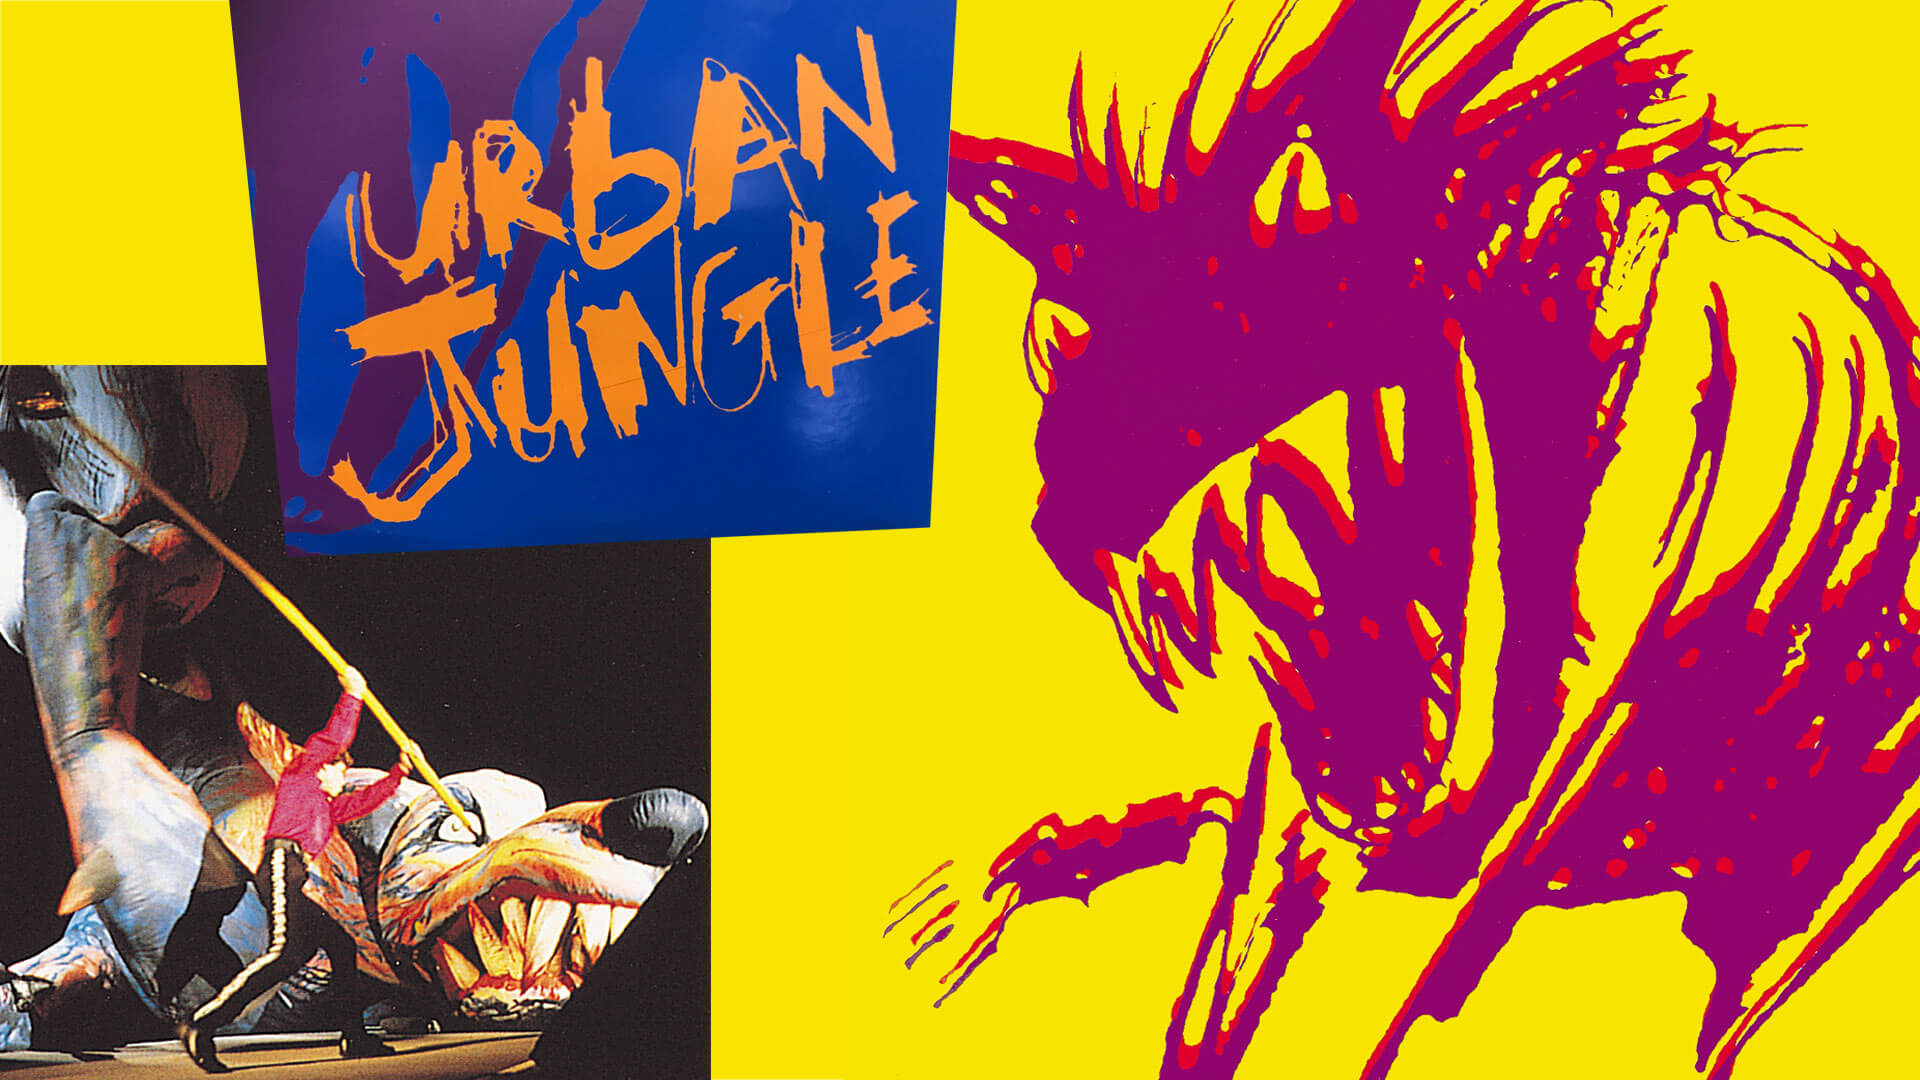 rolling stones urban jungle stage graphics and promotional images